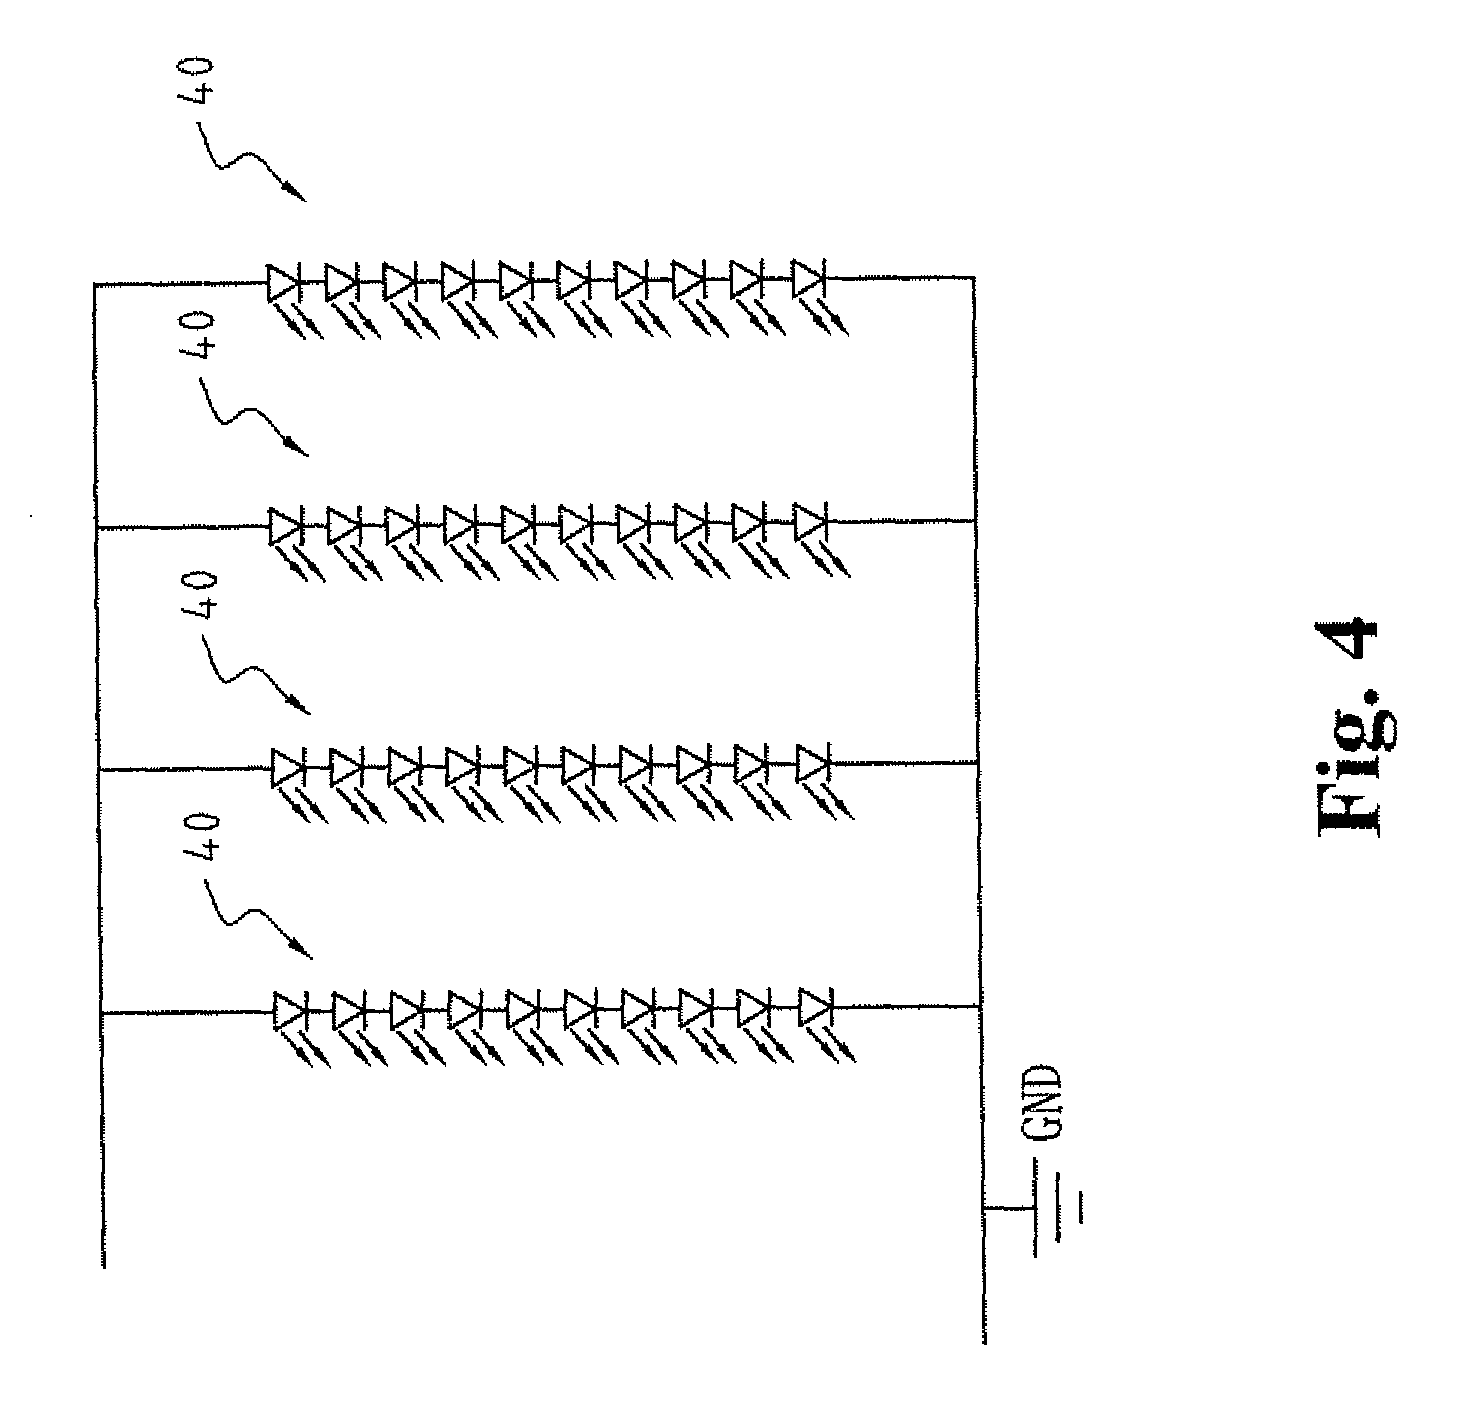 US20110025216 on diode anode cathode positive negative